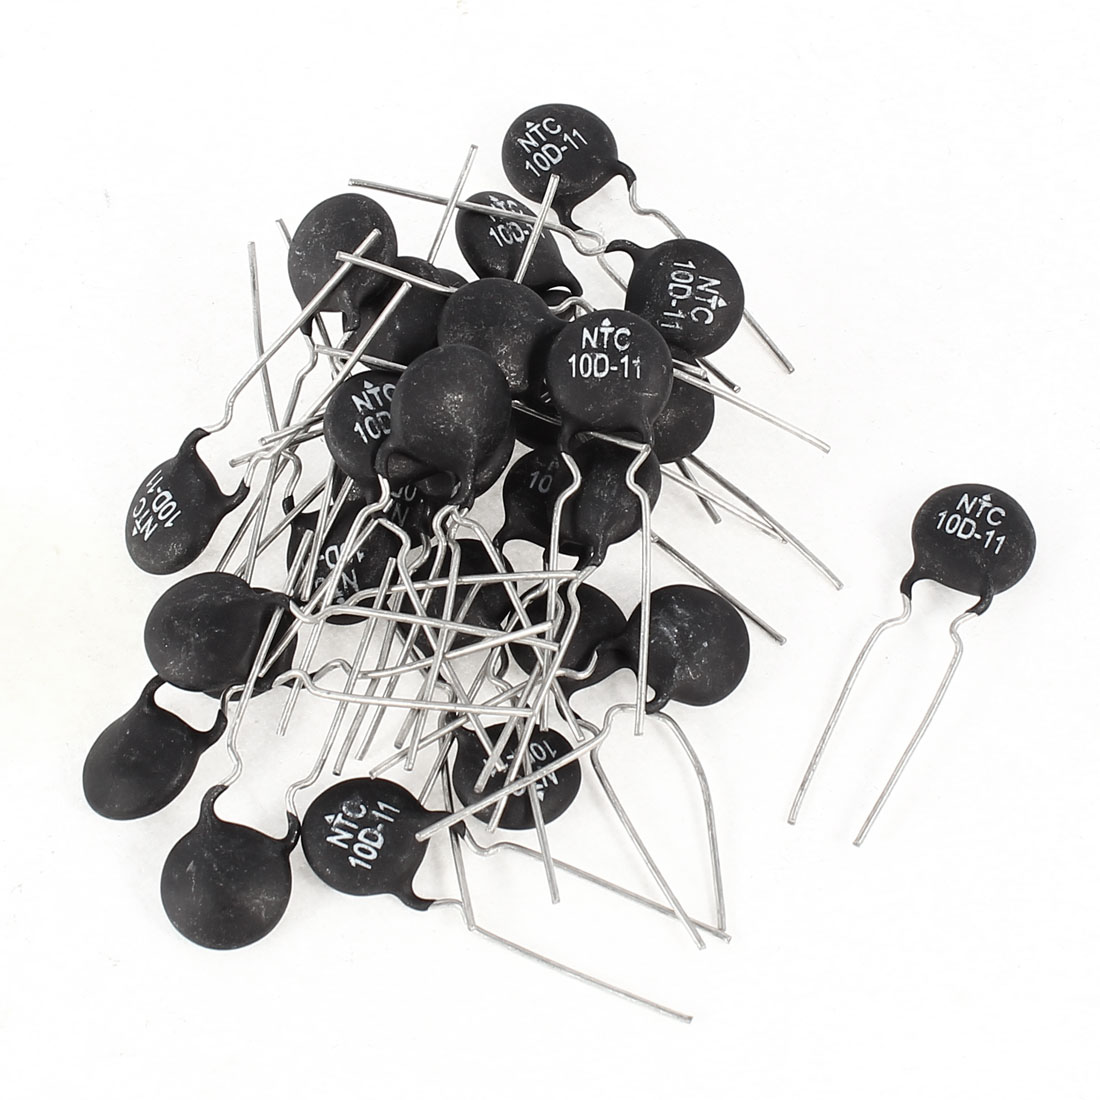 30 Pcs NTC 10D-11 10Ohm +/-10% Current Limiting Power Type Thermistor